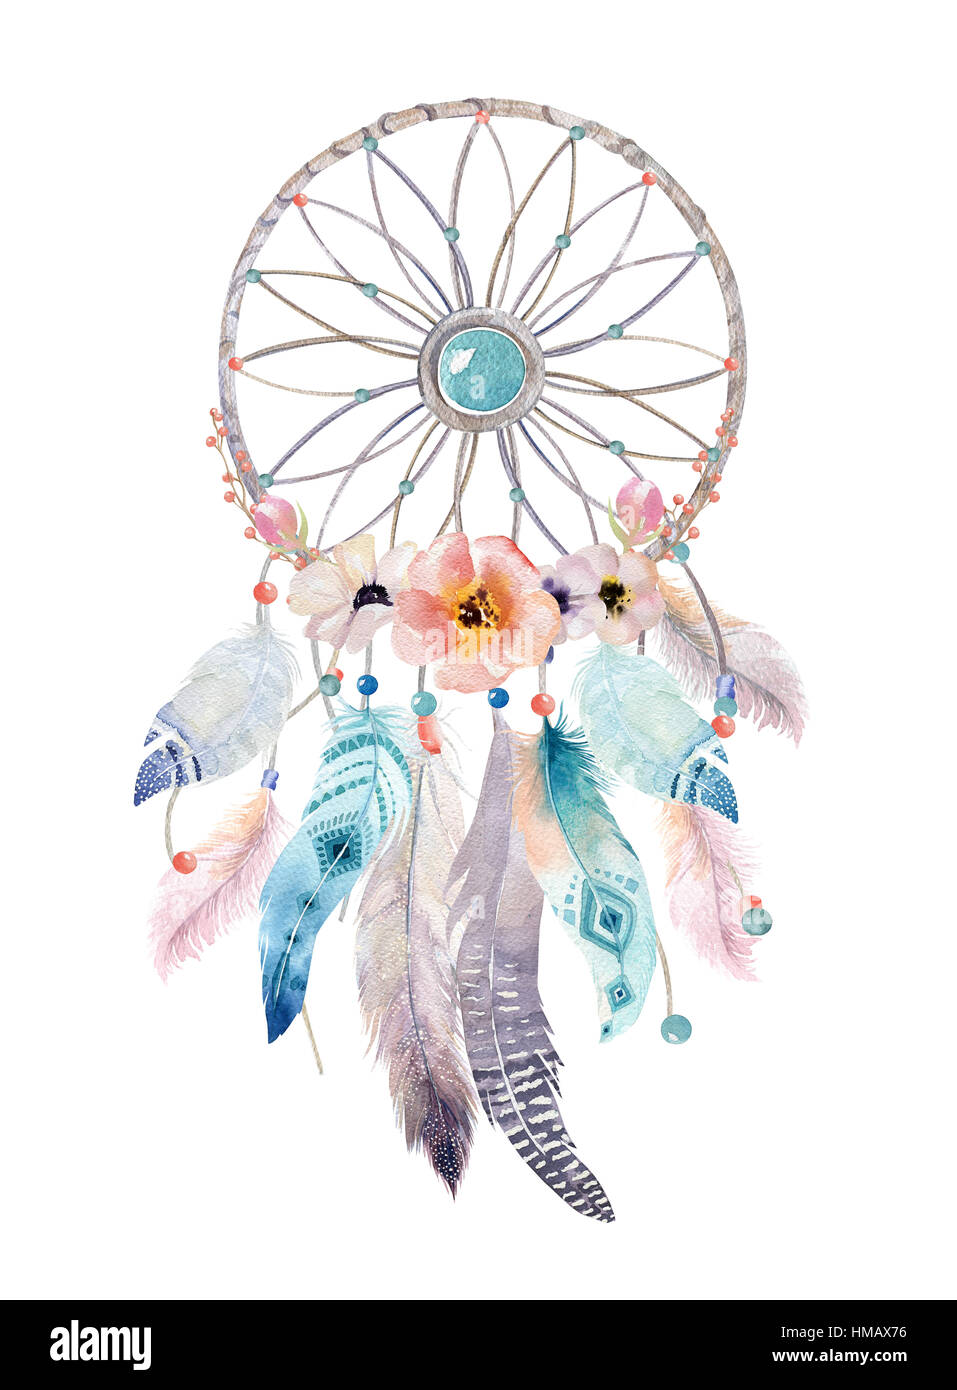 Isolated Watercolor Decoration Bohemian Dreamcatcher Boho Feath